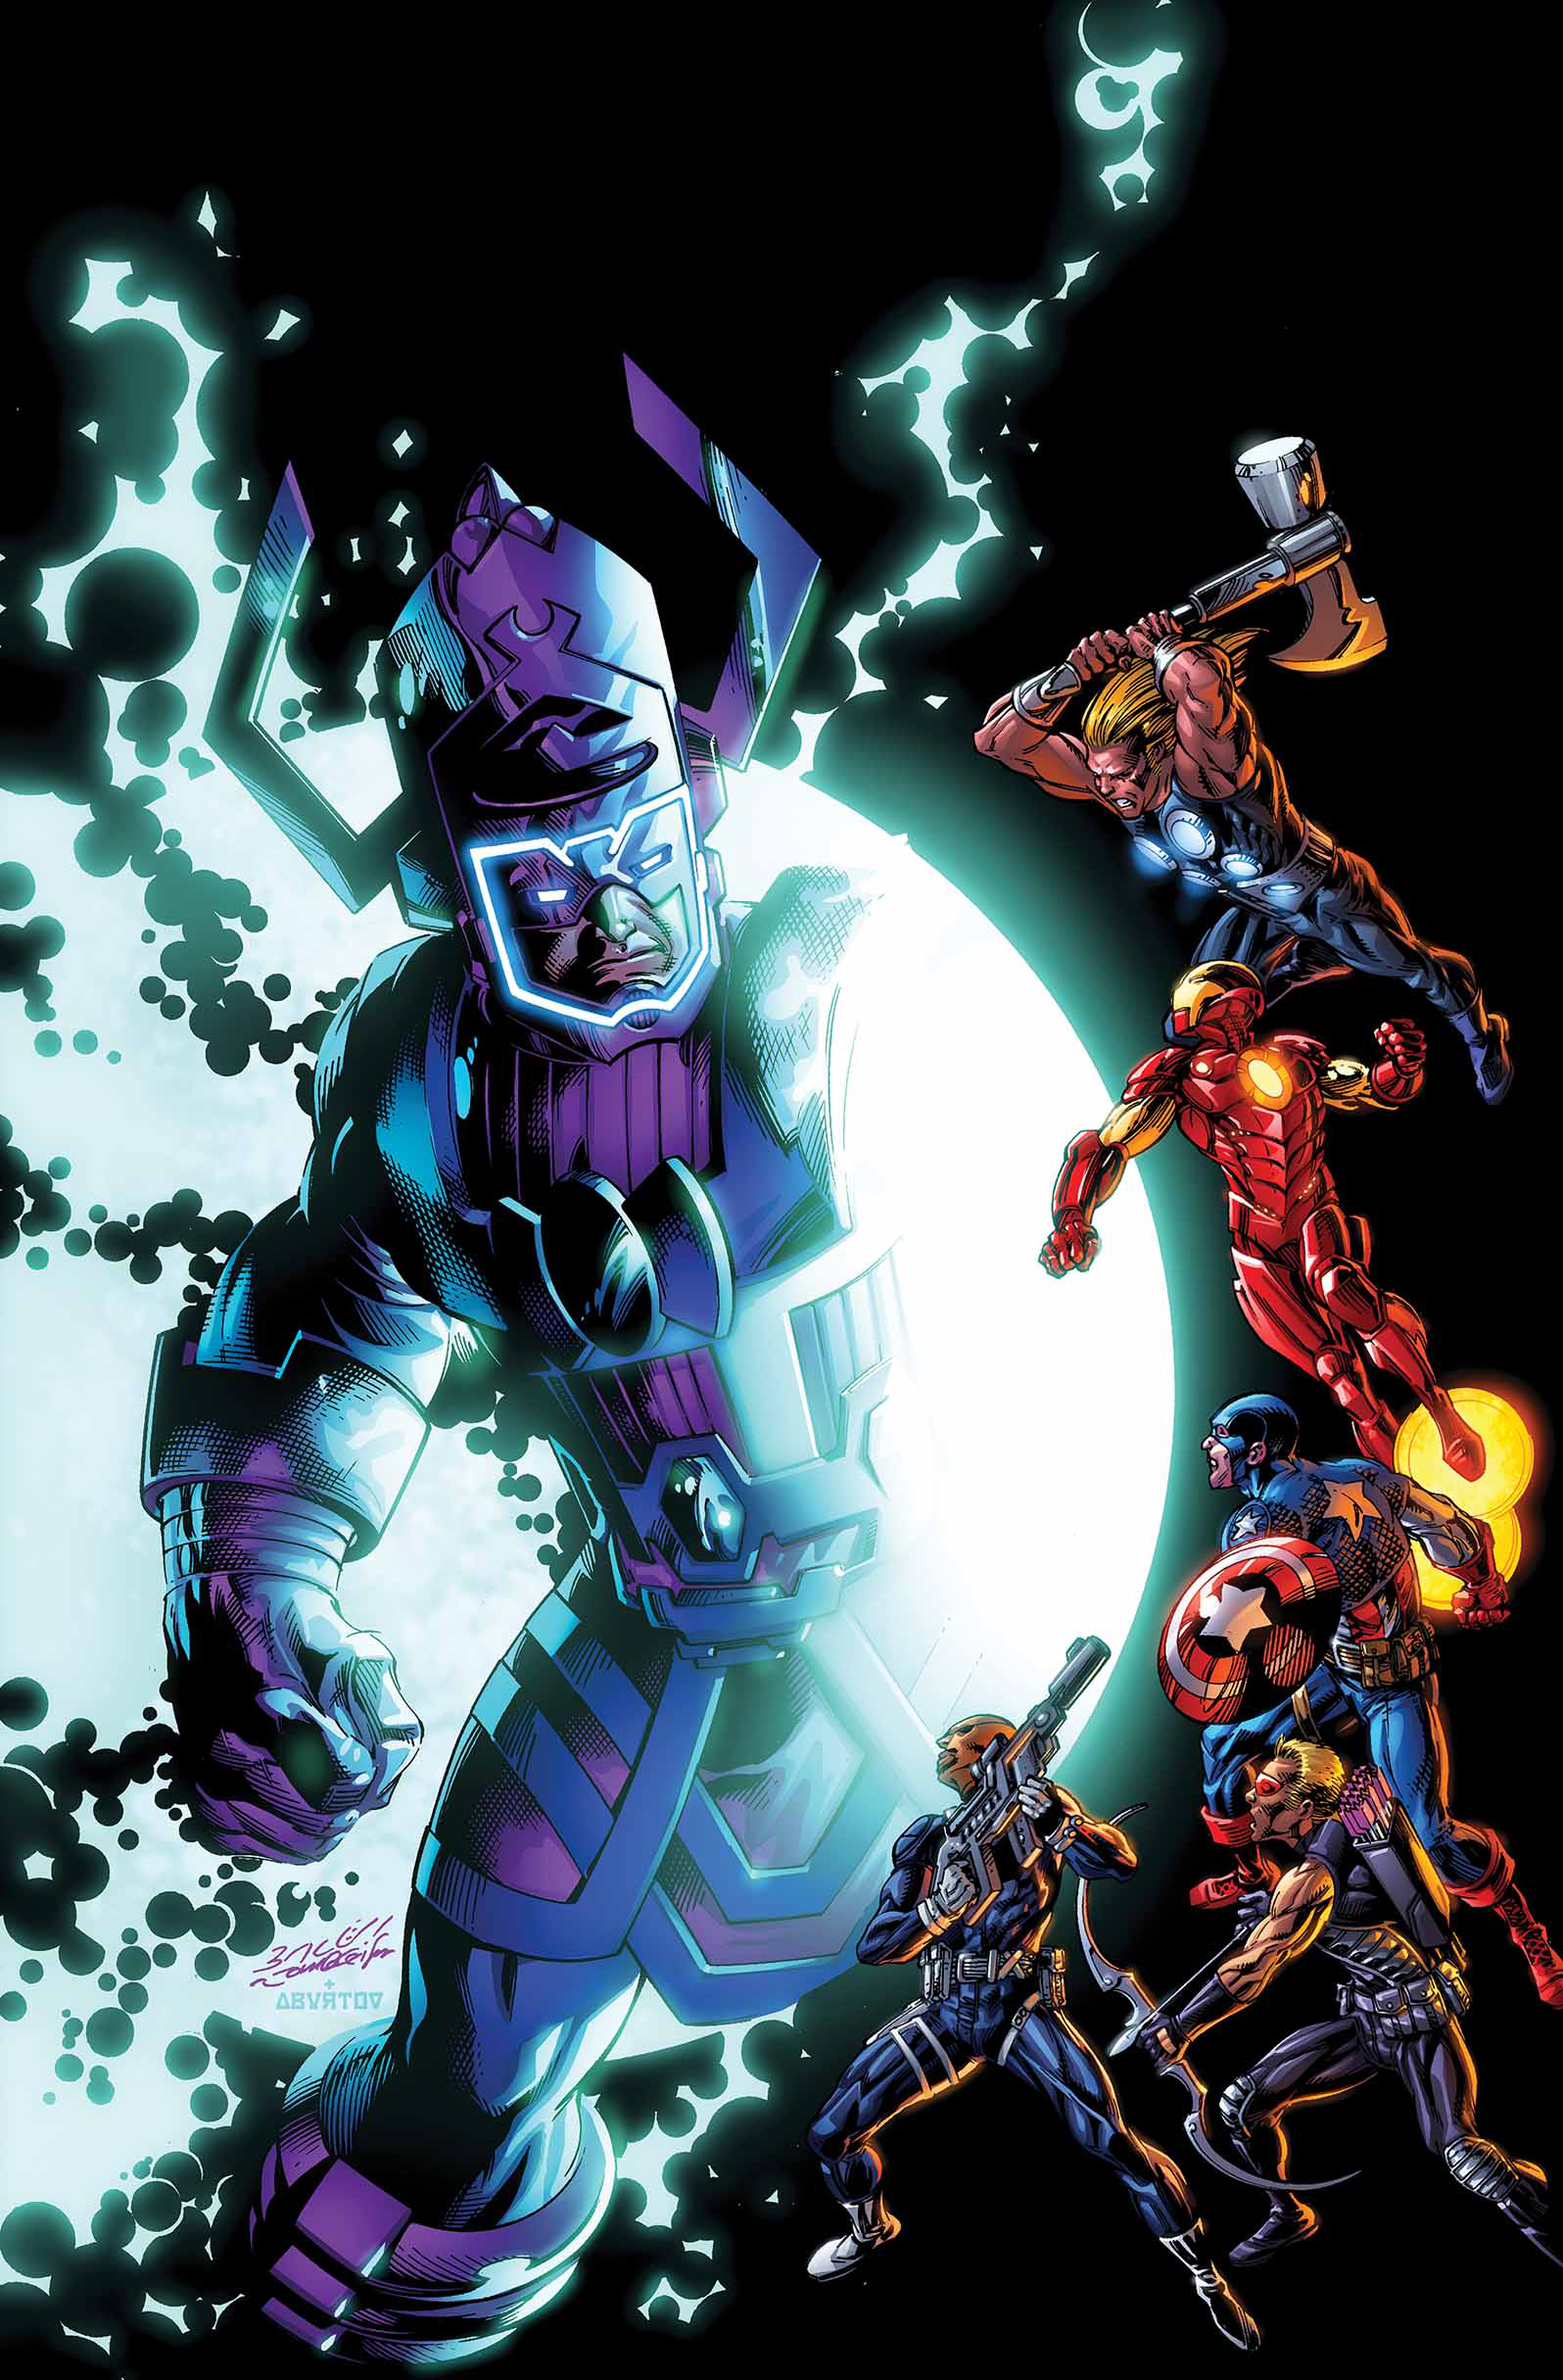 CATACLYSM ULTIMATES LAST STAND #1 (OF 5)